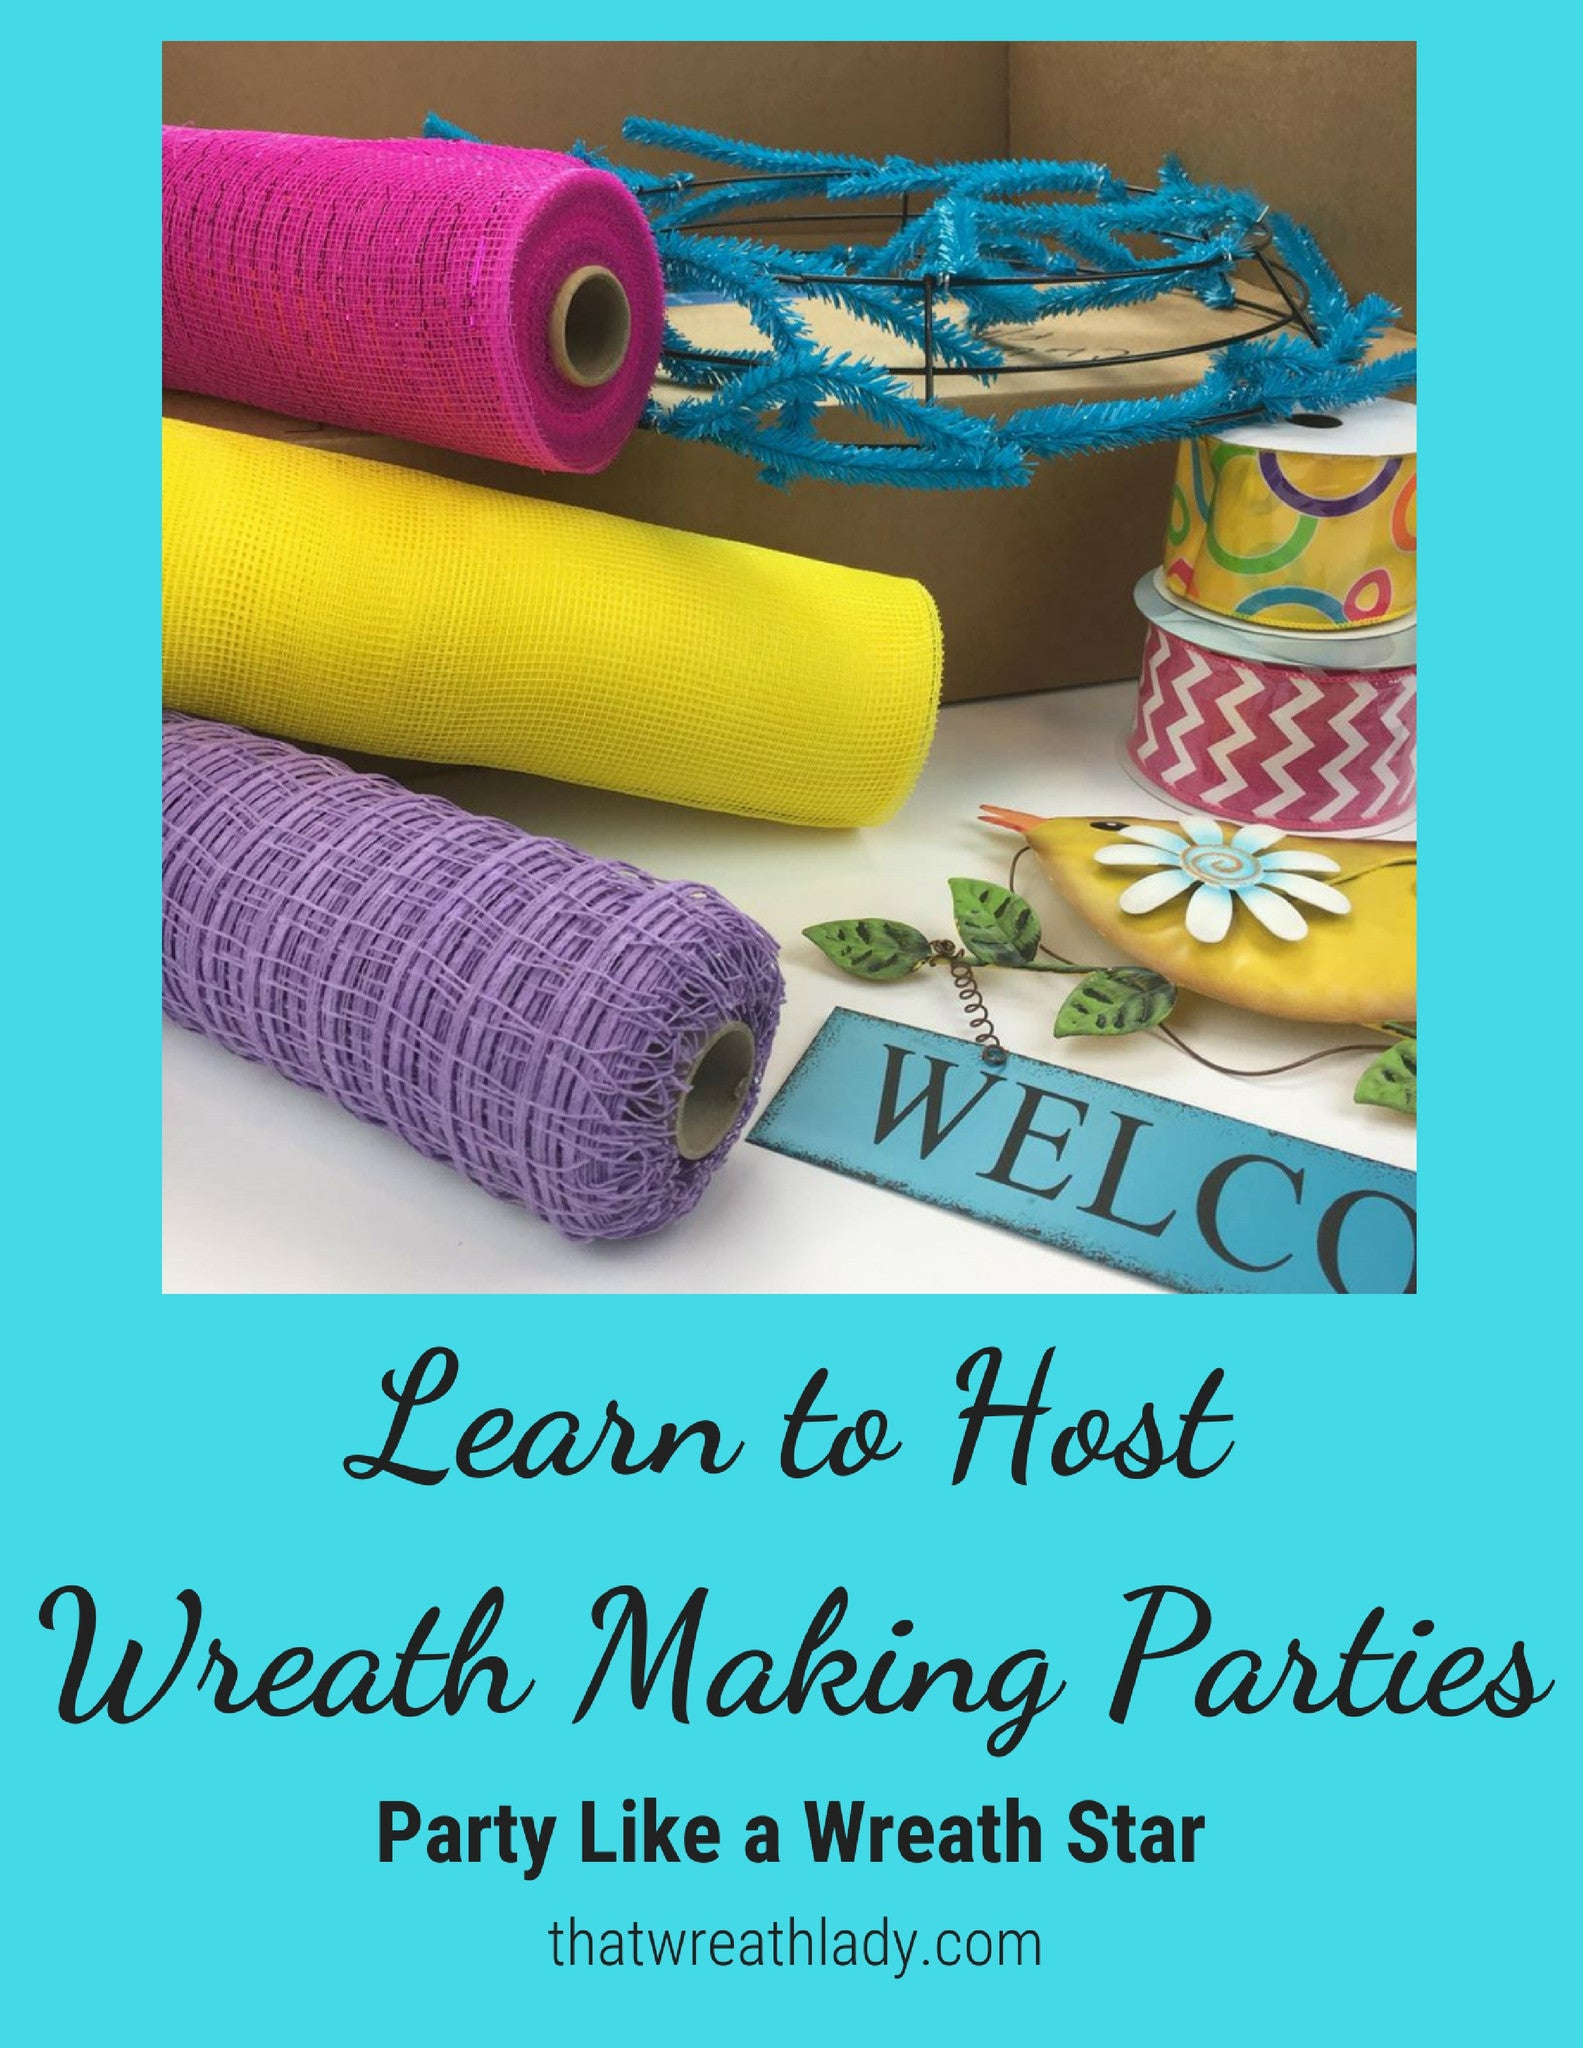 Learn to Host Wreath Making Parties.